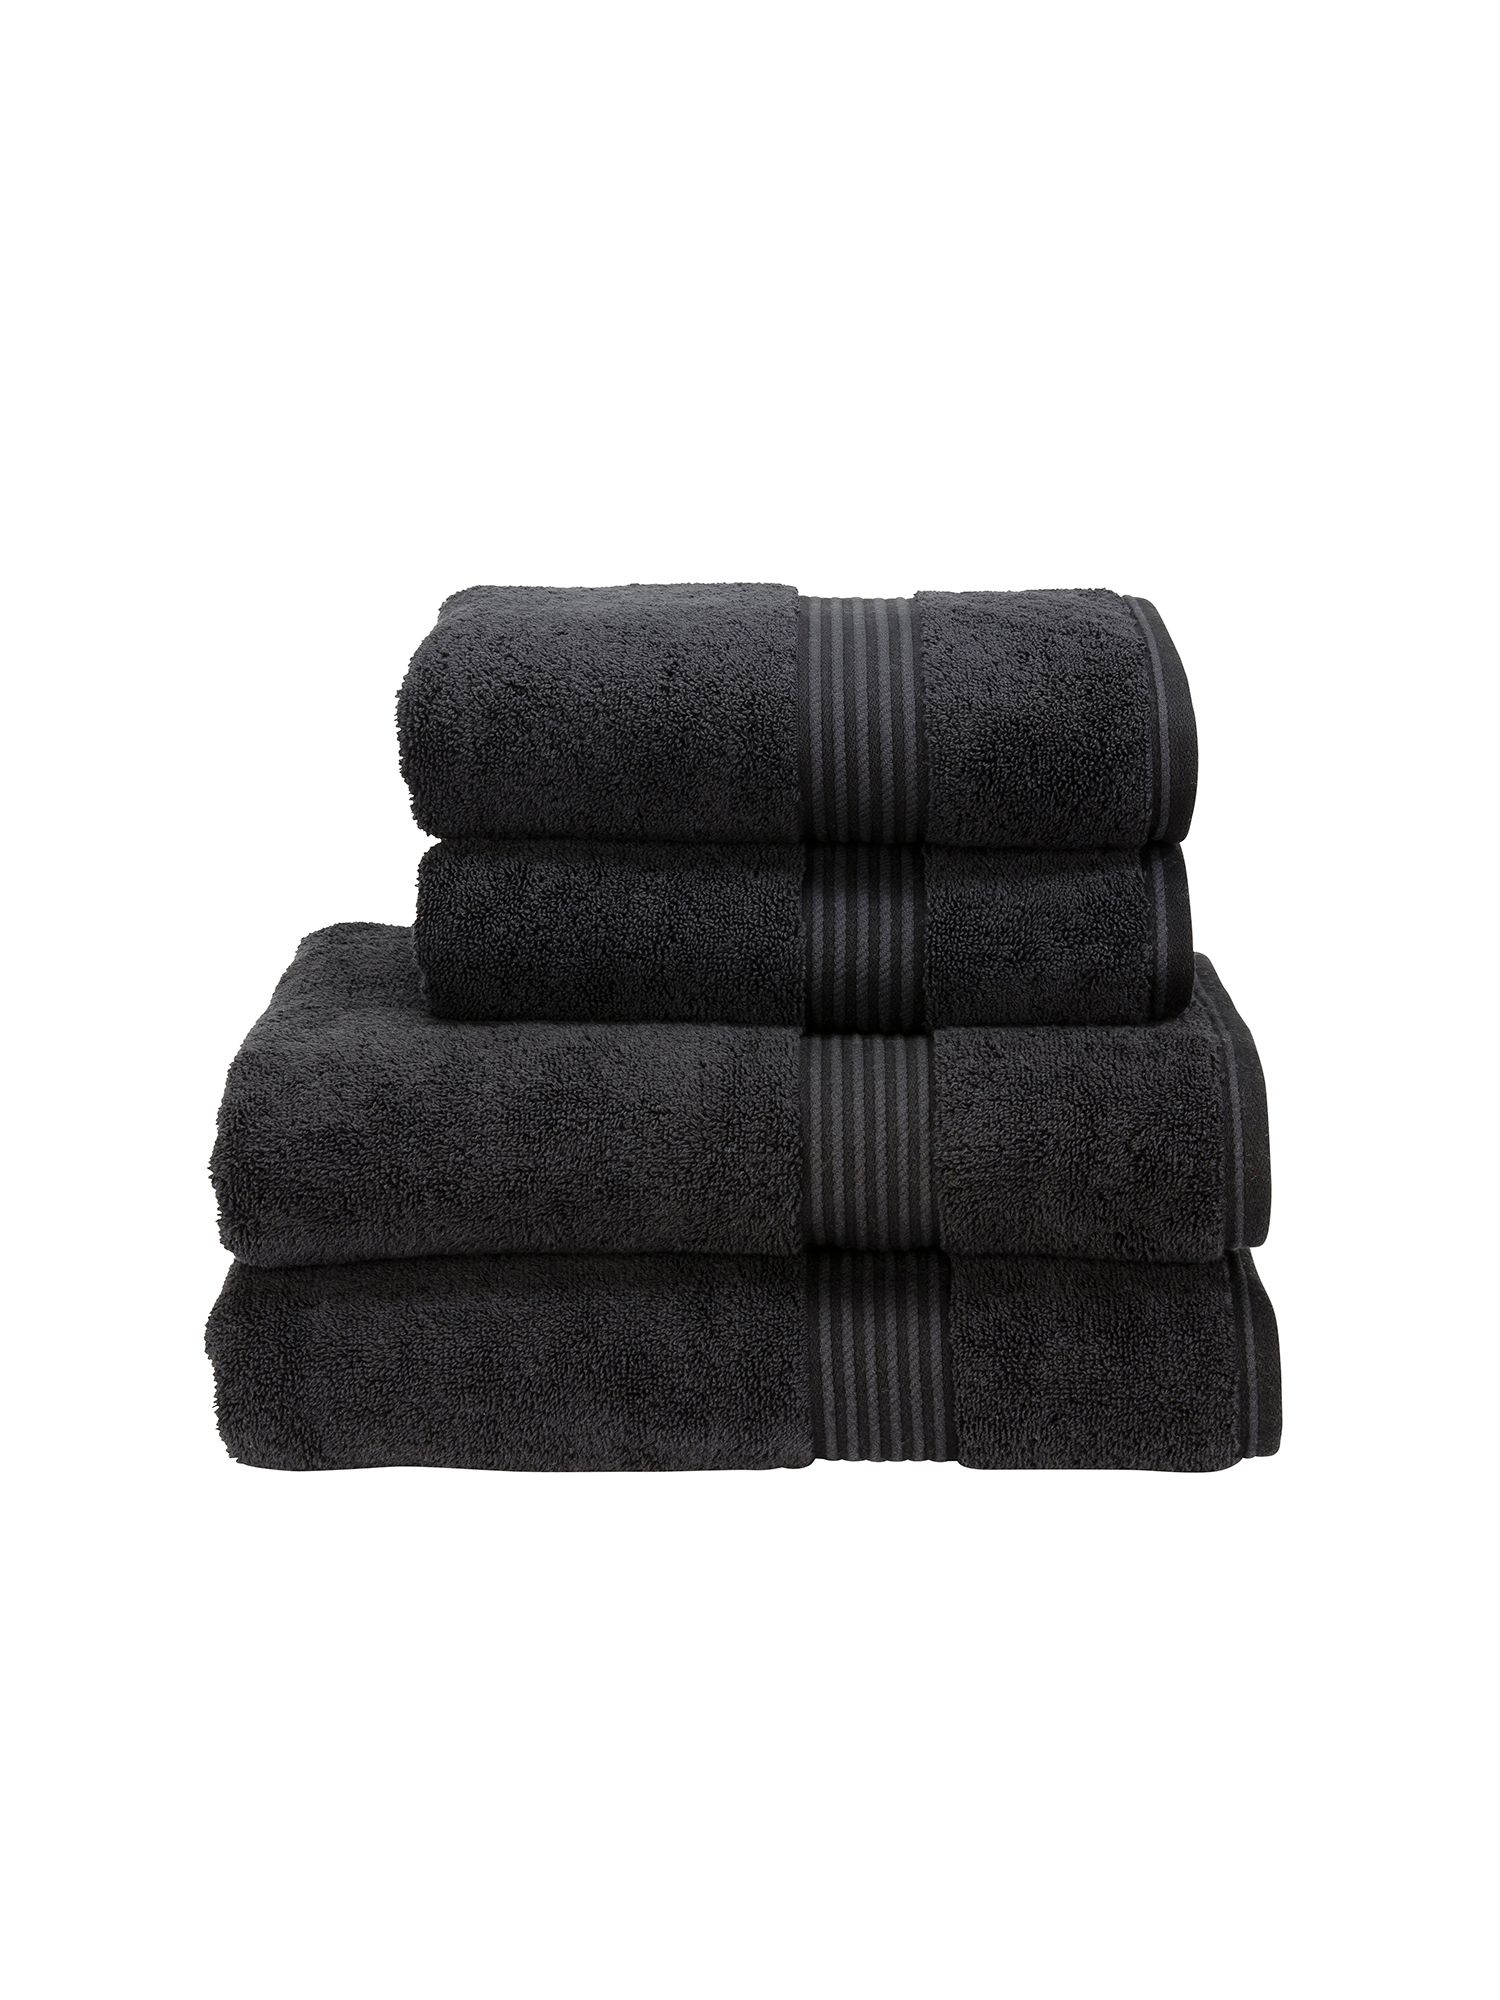 Supreme hygro towels black